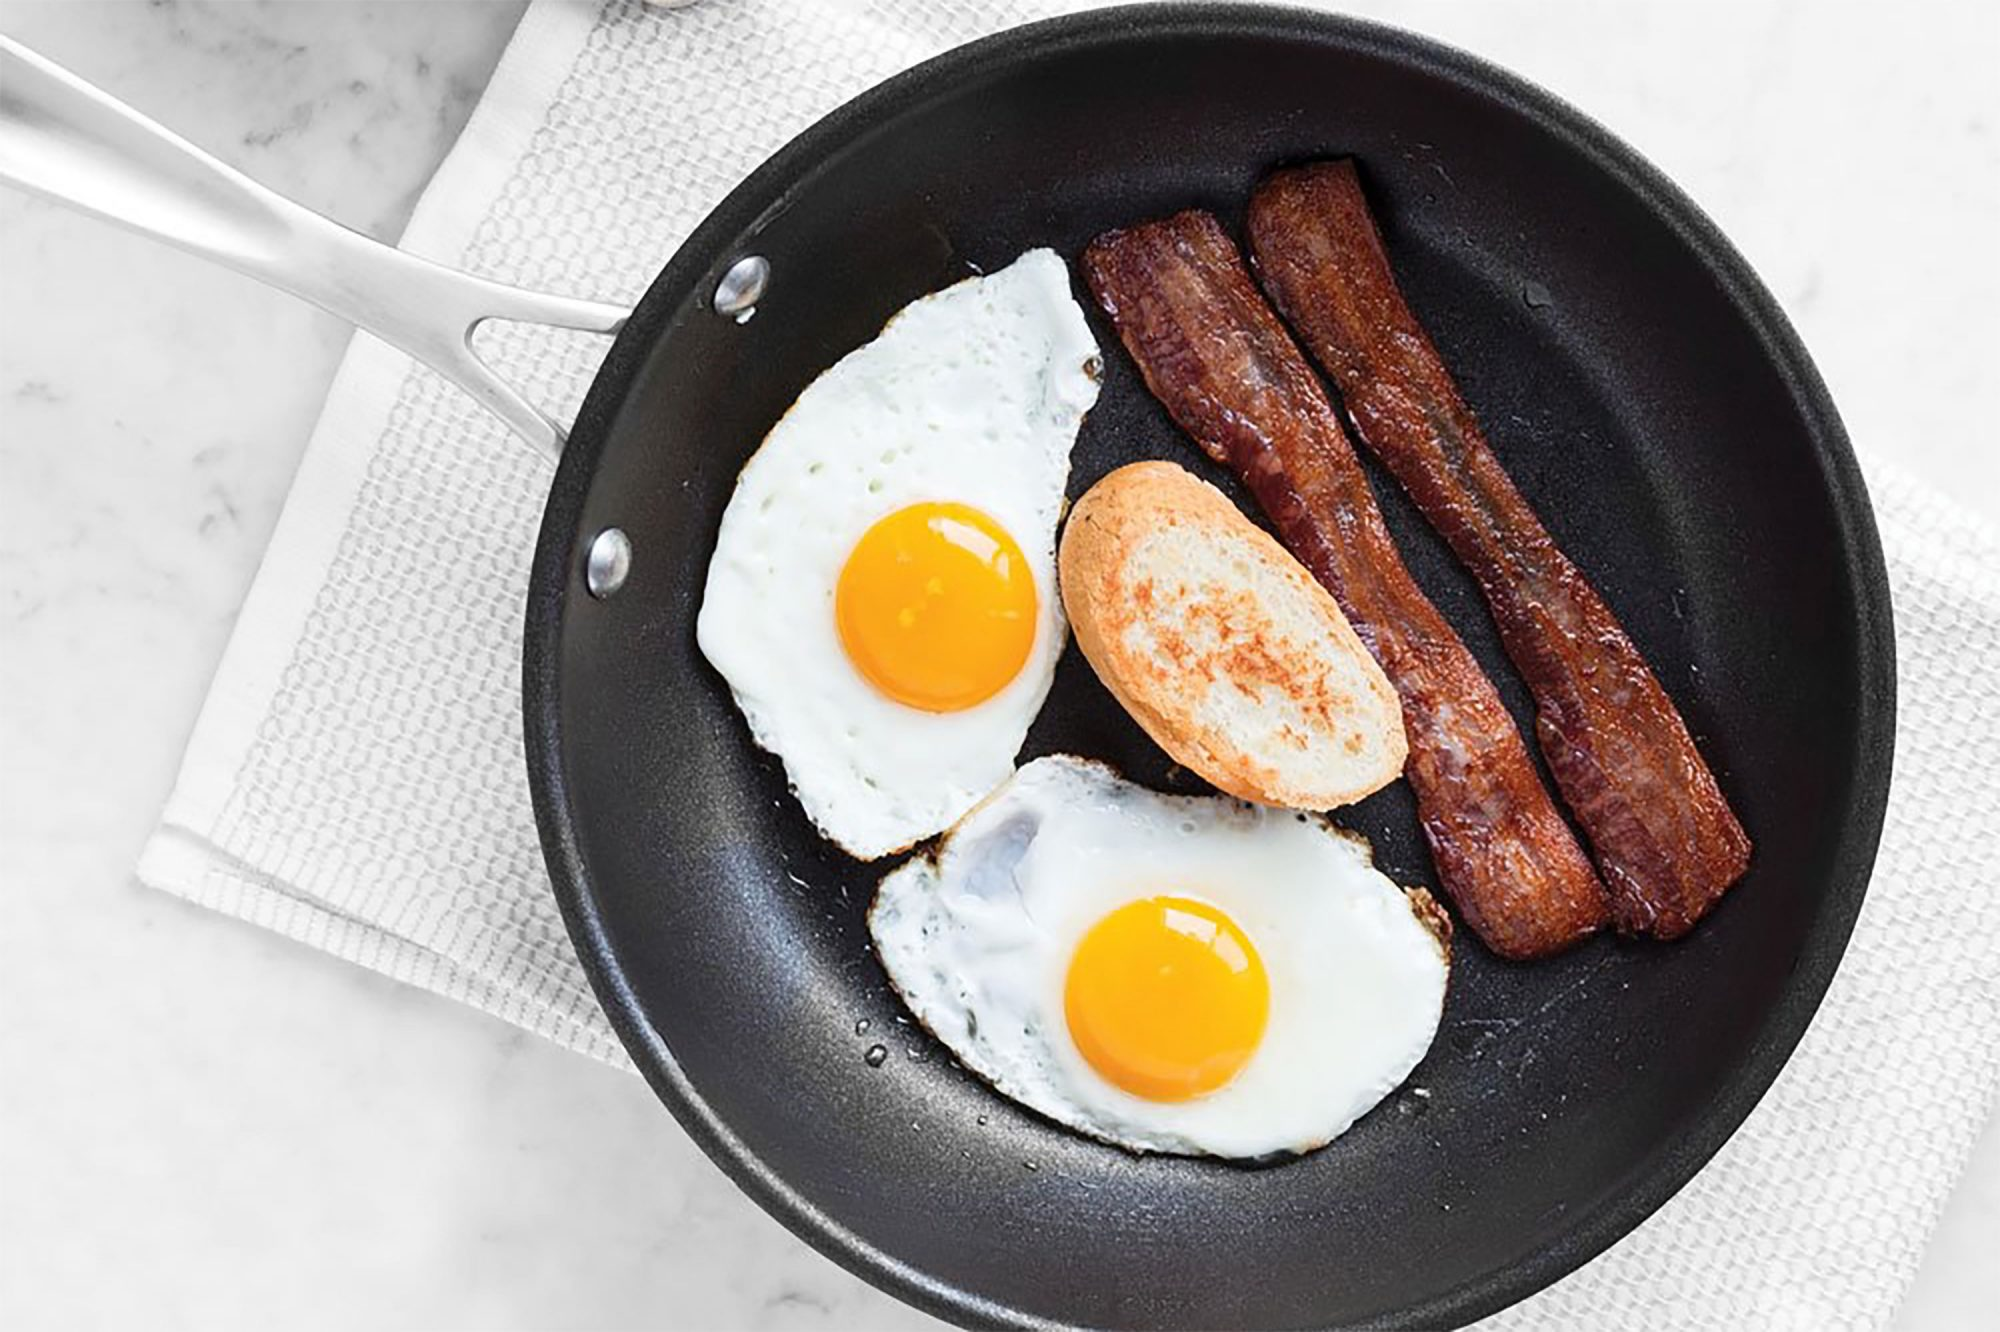 American Kitchen Cookware Skillet with Eggs and Bacon